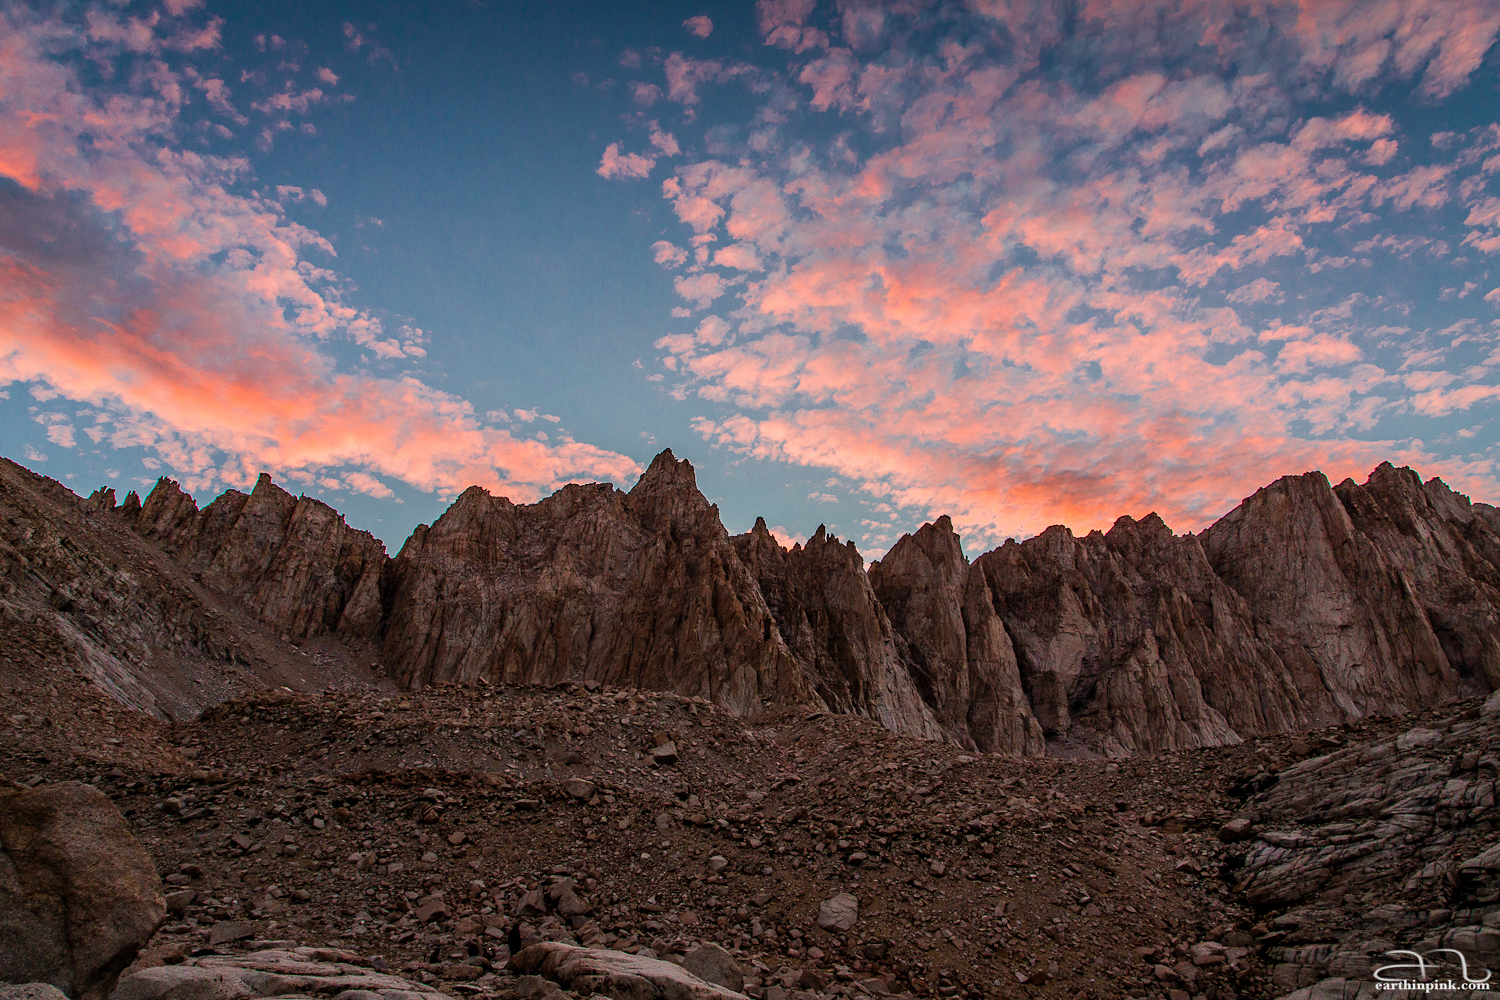 Sunset from Trail Camp on the Mount Whitney trail, California.